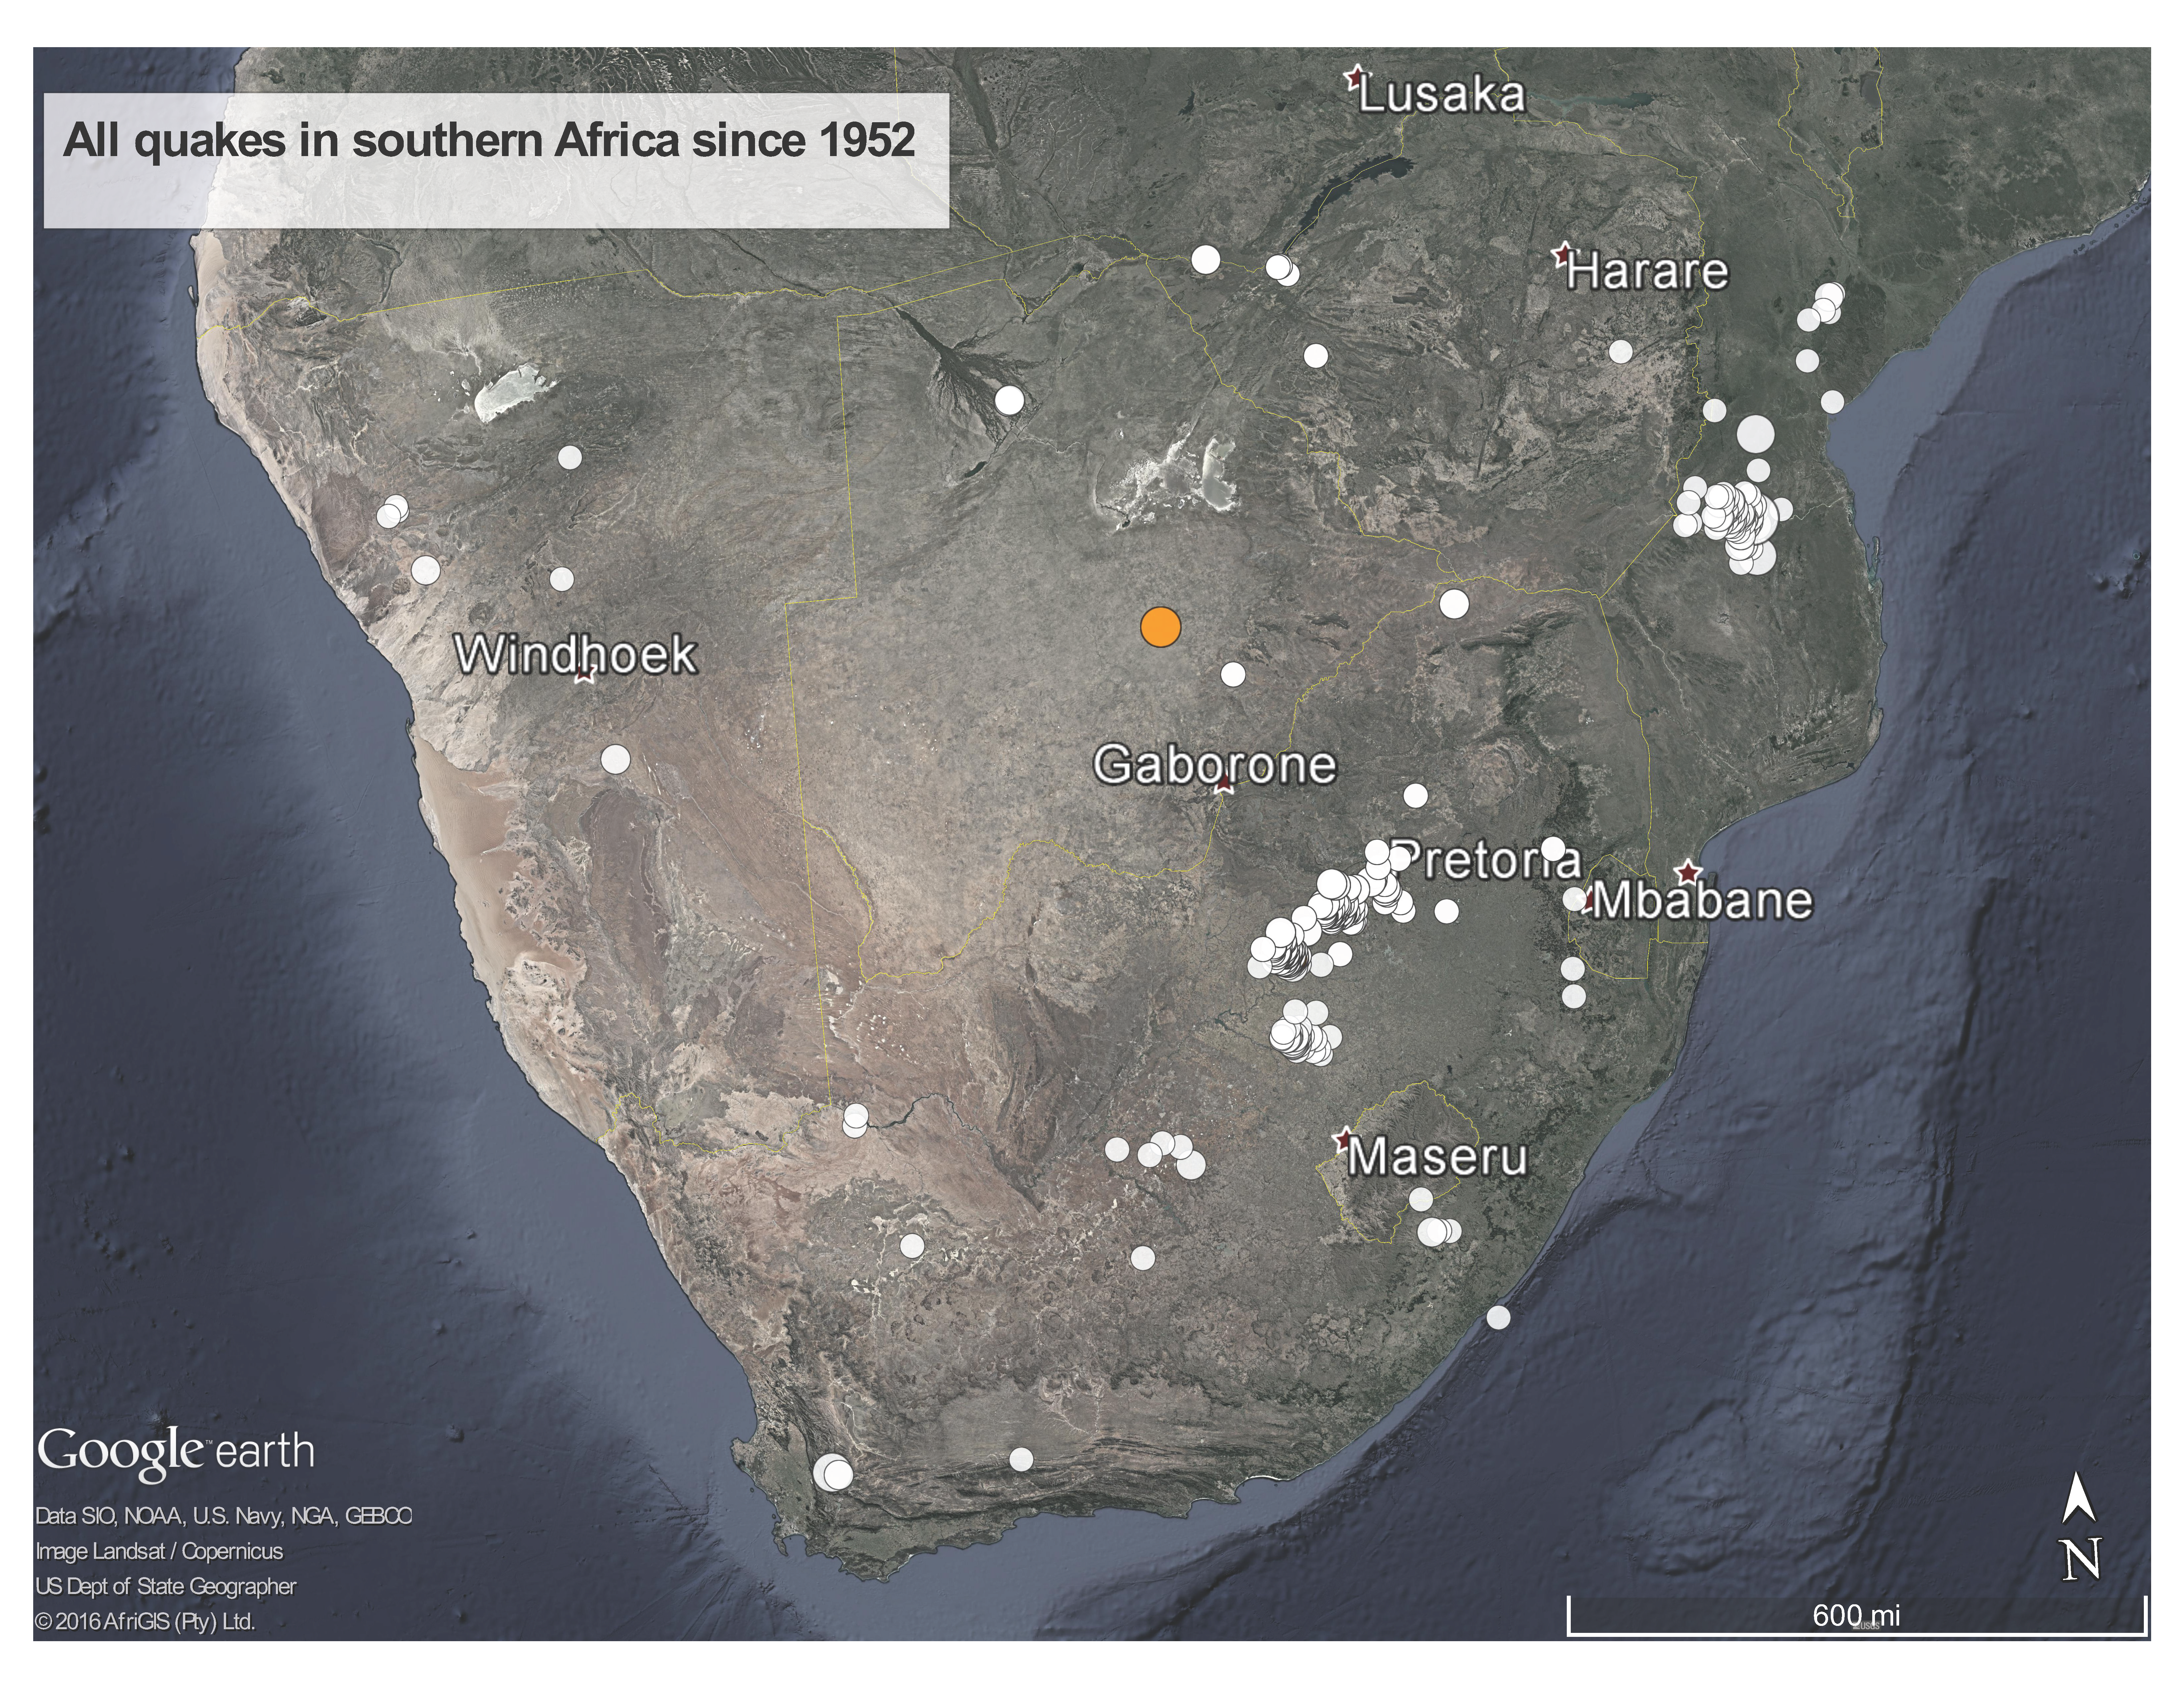 Google Earth image of seismic activity in Southern Africa